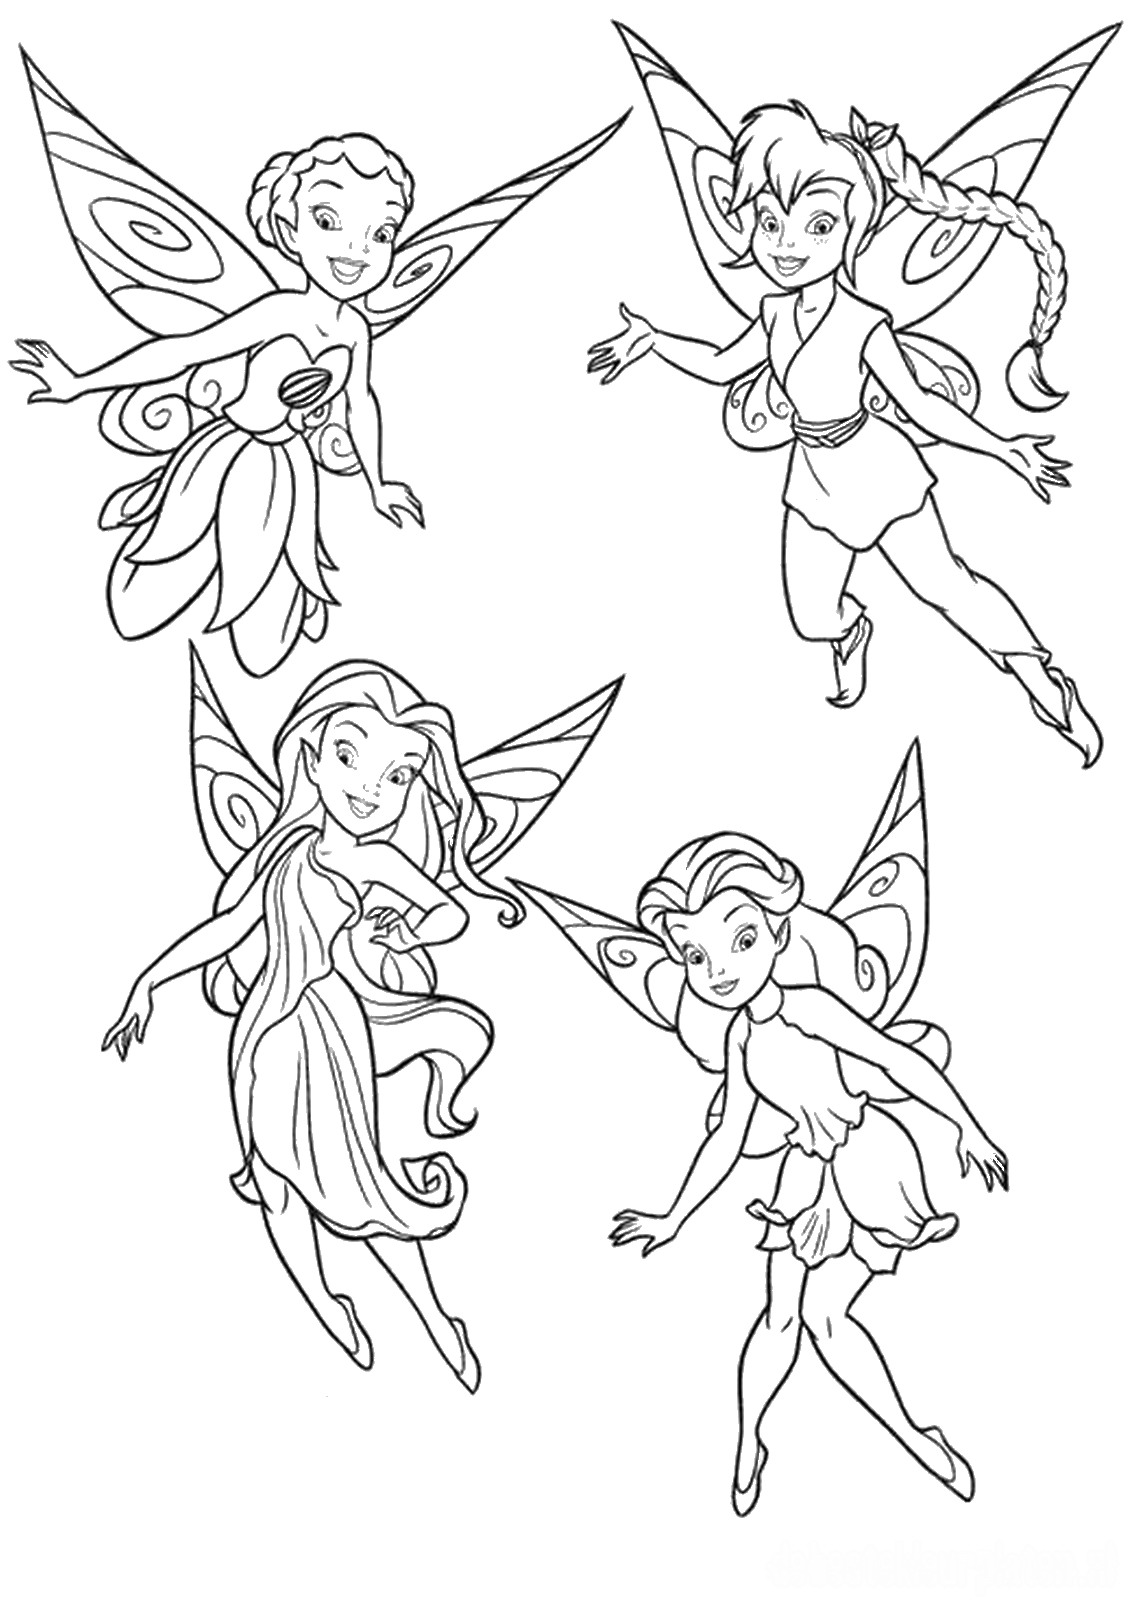 tinkerbell colouring in tinkerbell coloring pages in colouring tinkerbell